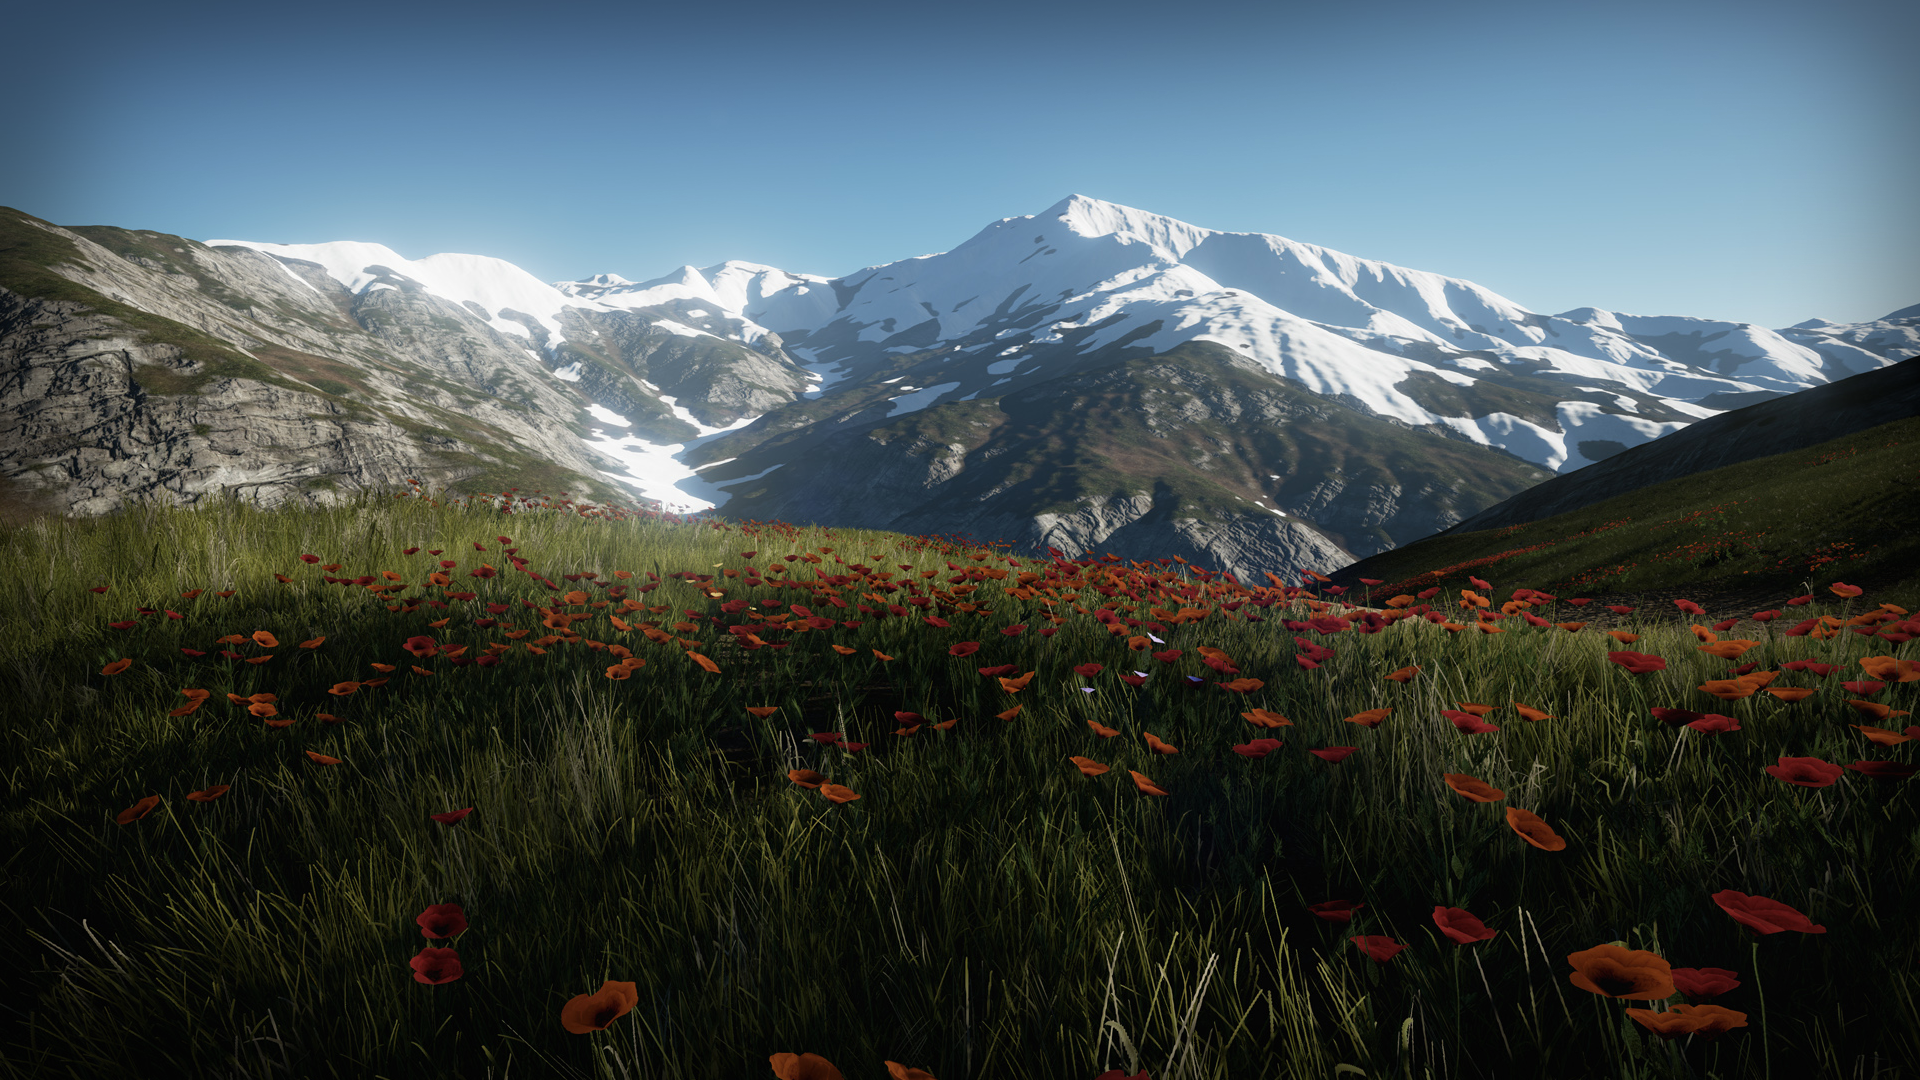 Photorealistic Mountain Pack-2 by Gkan Games